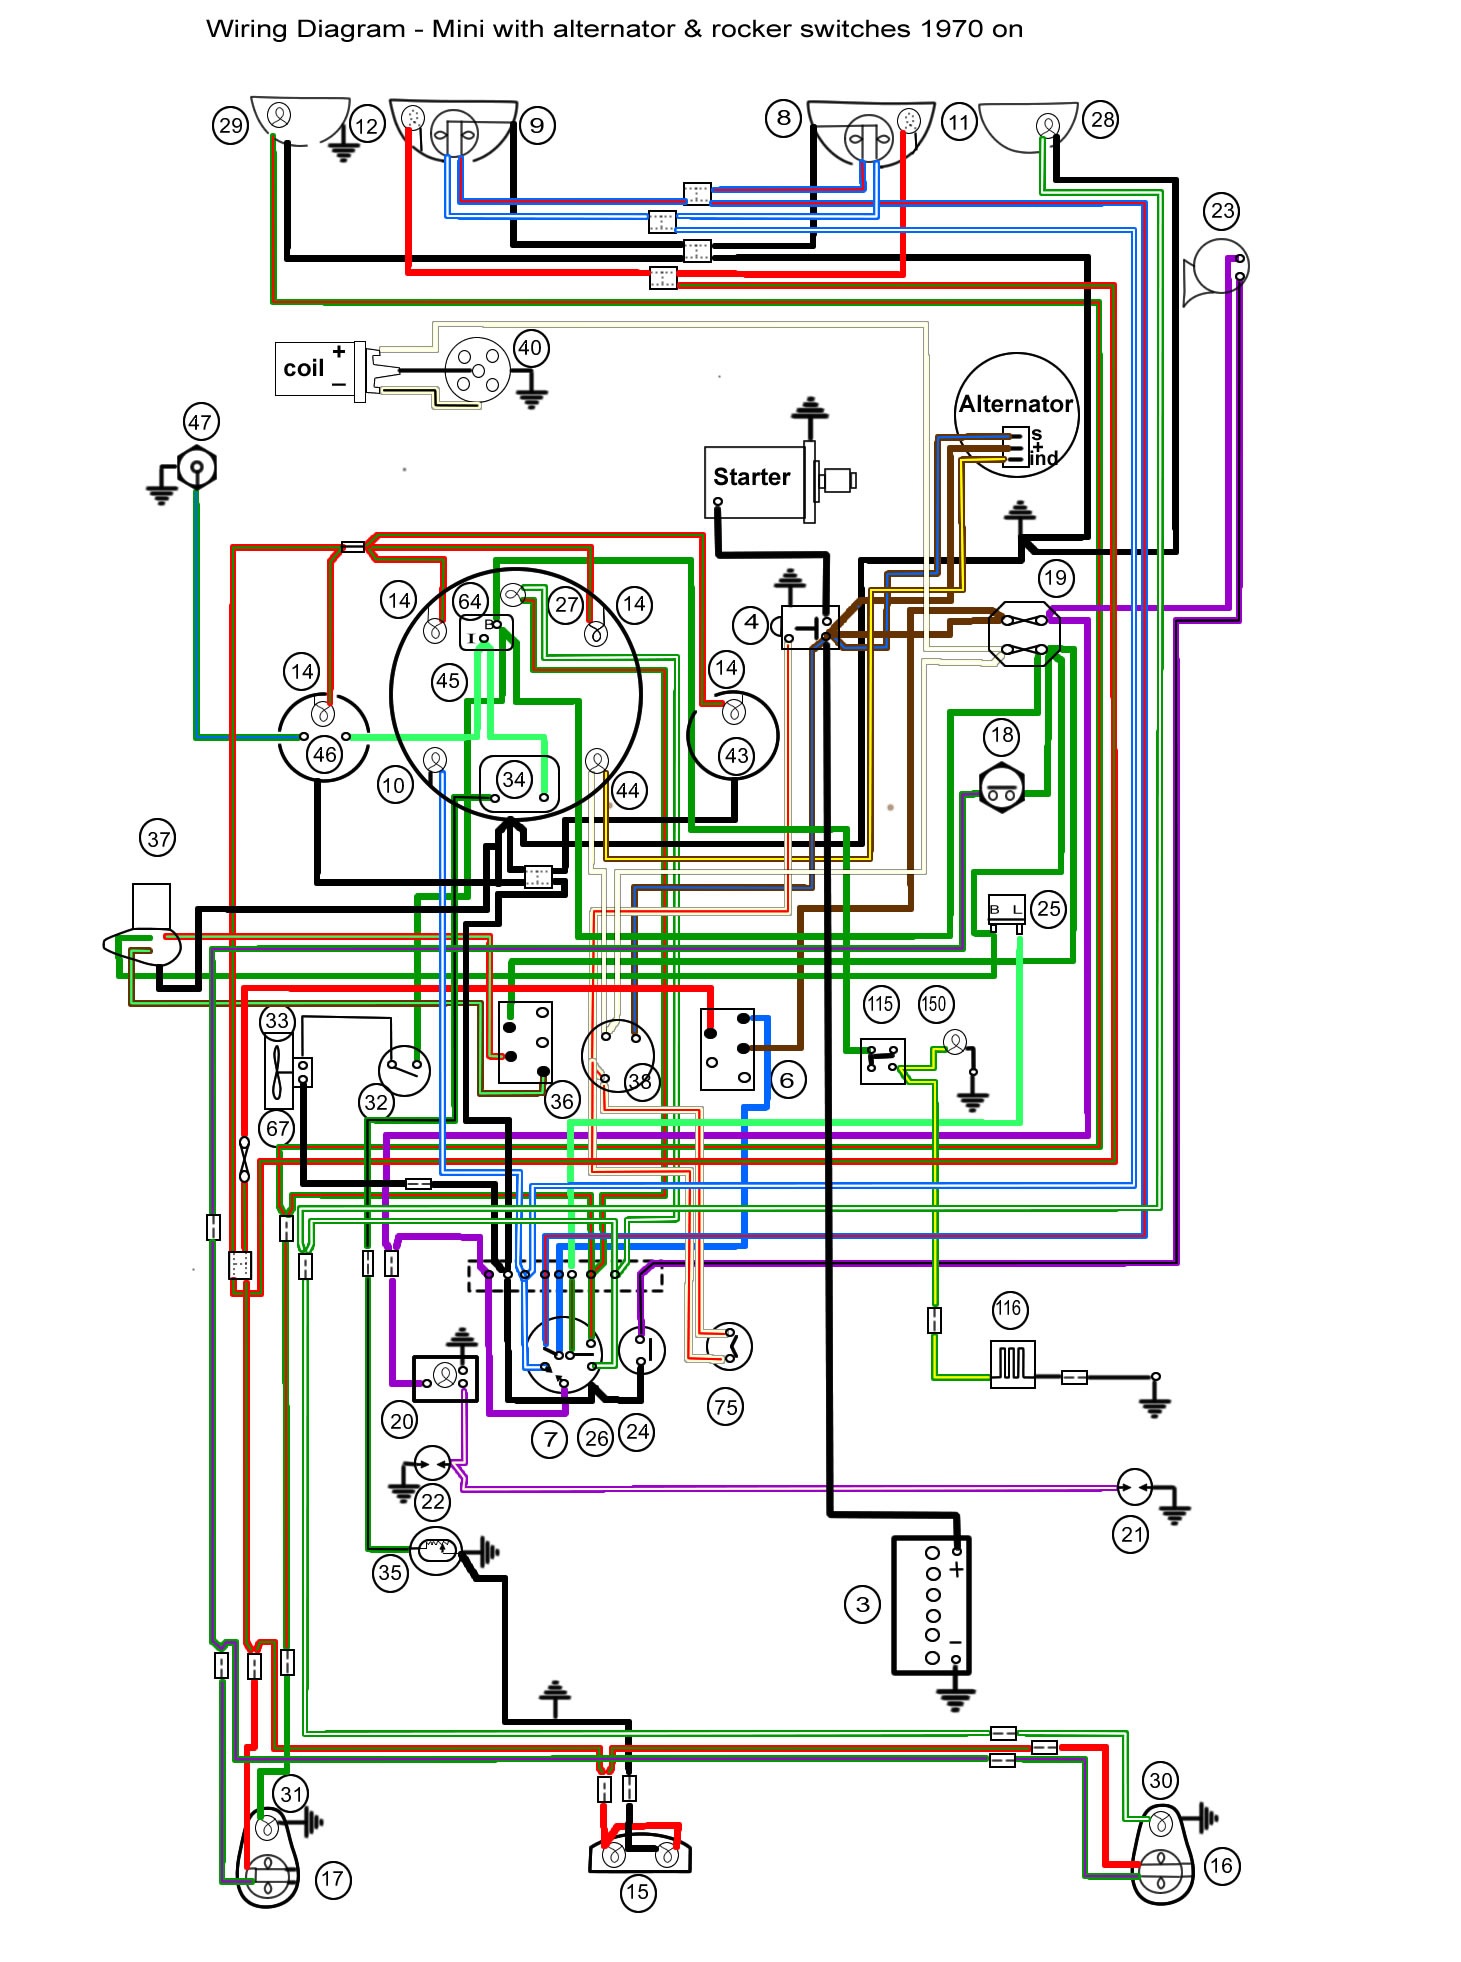 Bmw E65 Wiring Diagram Not Lossing E46 Pdc Minifinity The Classic Mini Forum And Resource U2022 View Audio Pdf